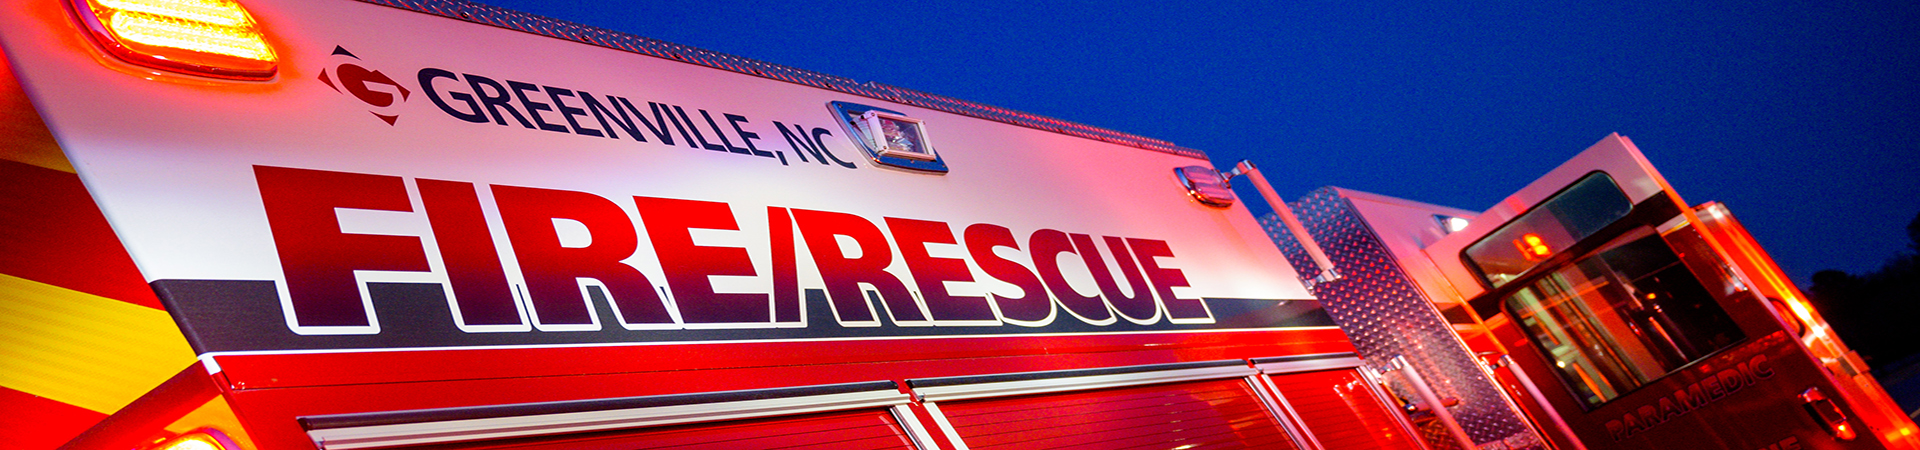 Fire Rescue Truck Banner Image